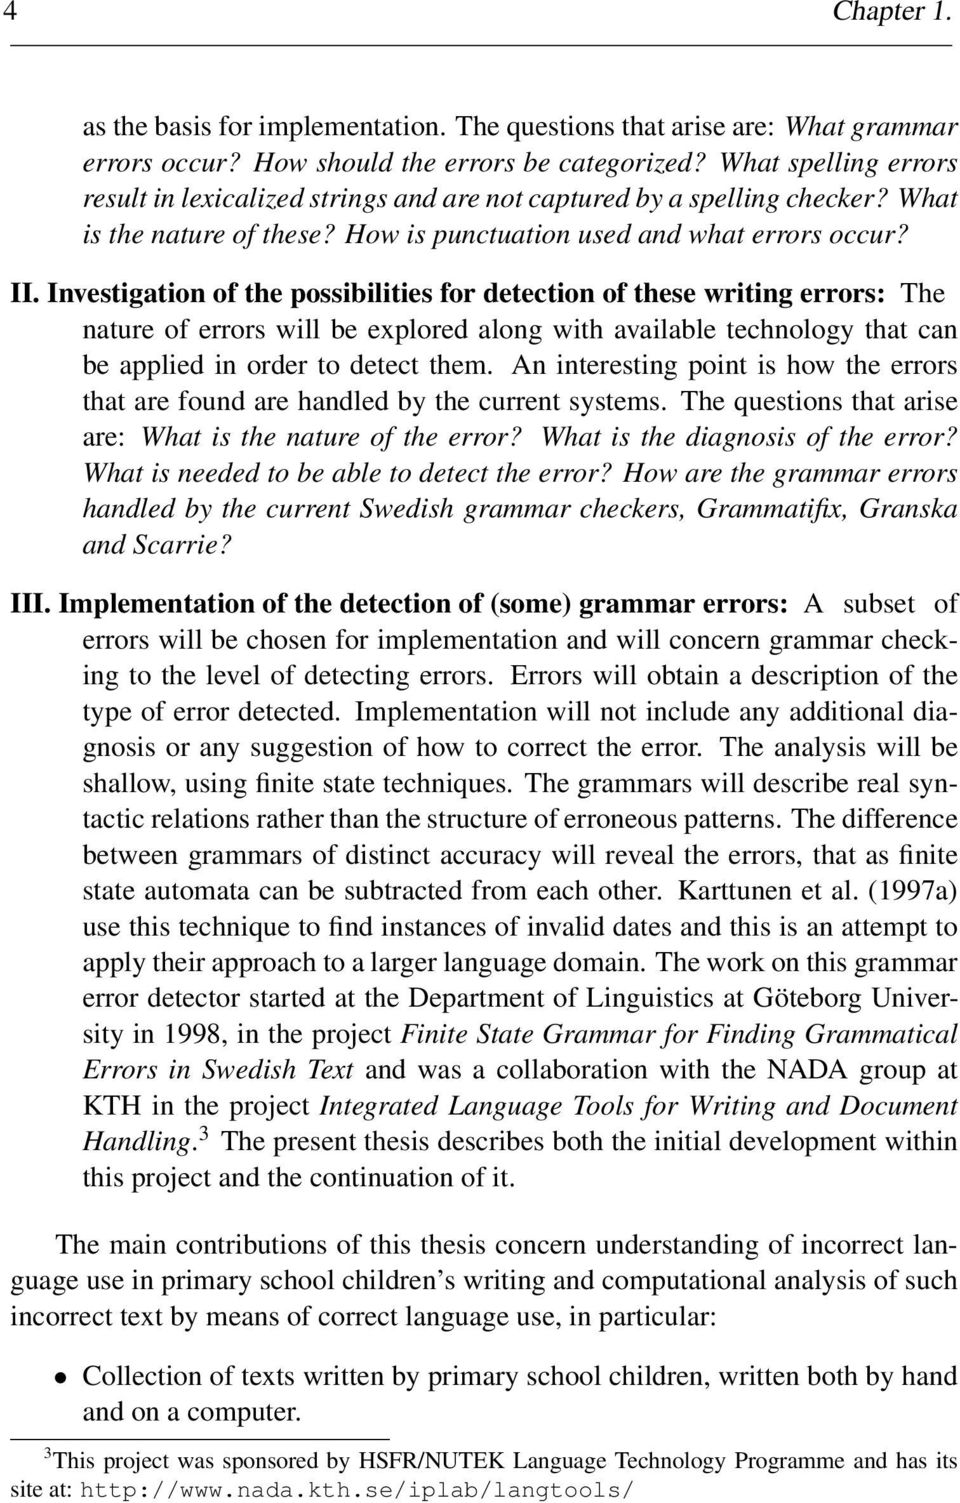 Investigation of the possibilities for detection of these writing errors: The nature of errors will be explored along with available technology that can be applied in order to detect them.